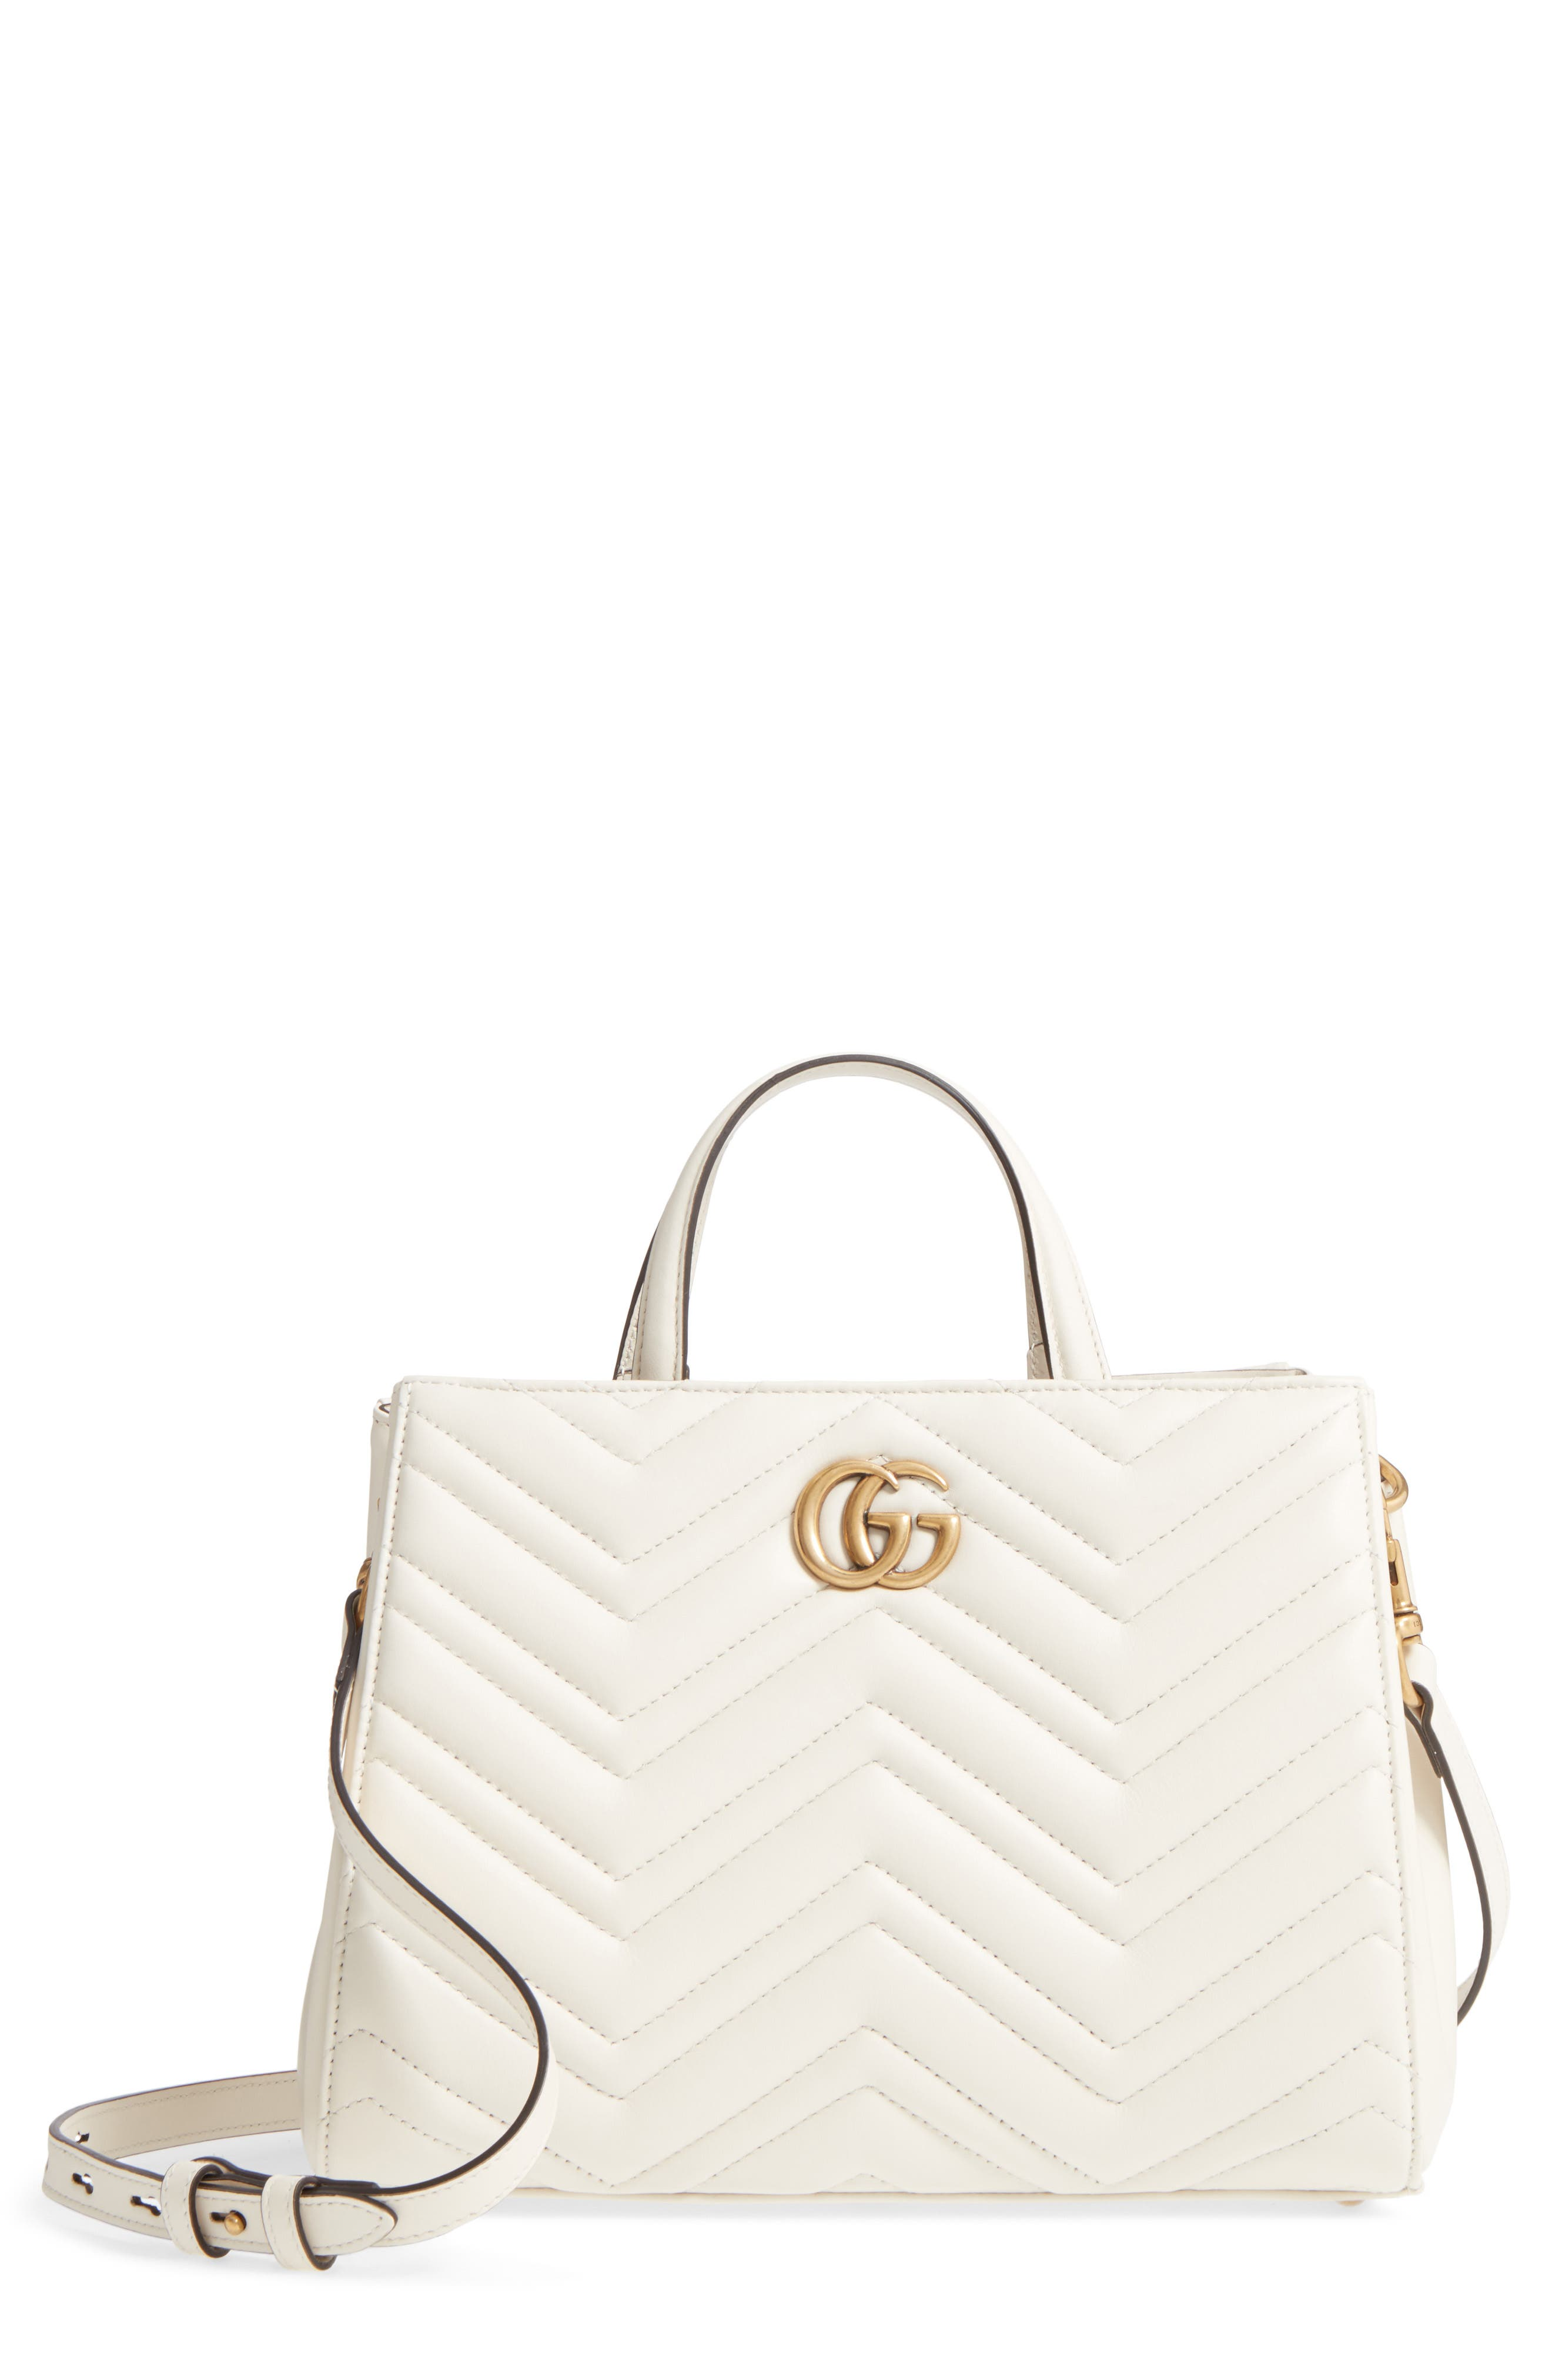 Alternate Image 1 Selected - Gucci GG Small Marmont 2.0 Matelassé Leather Top Handle Satchel